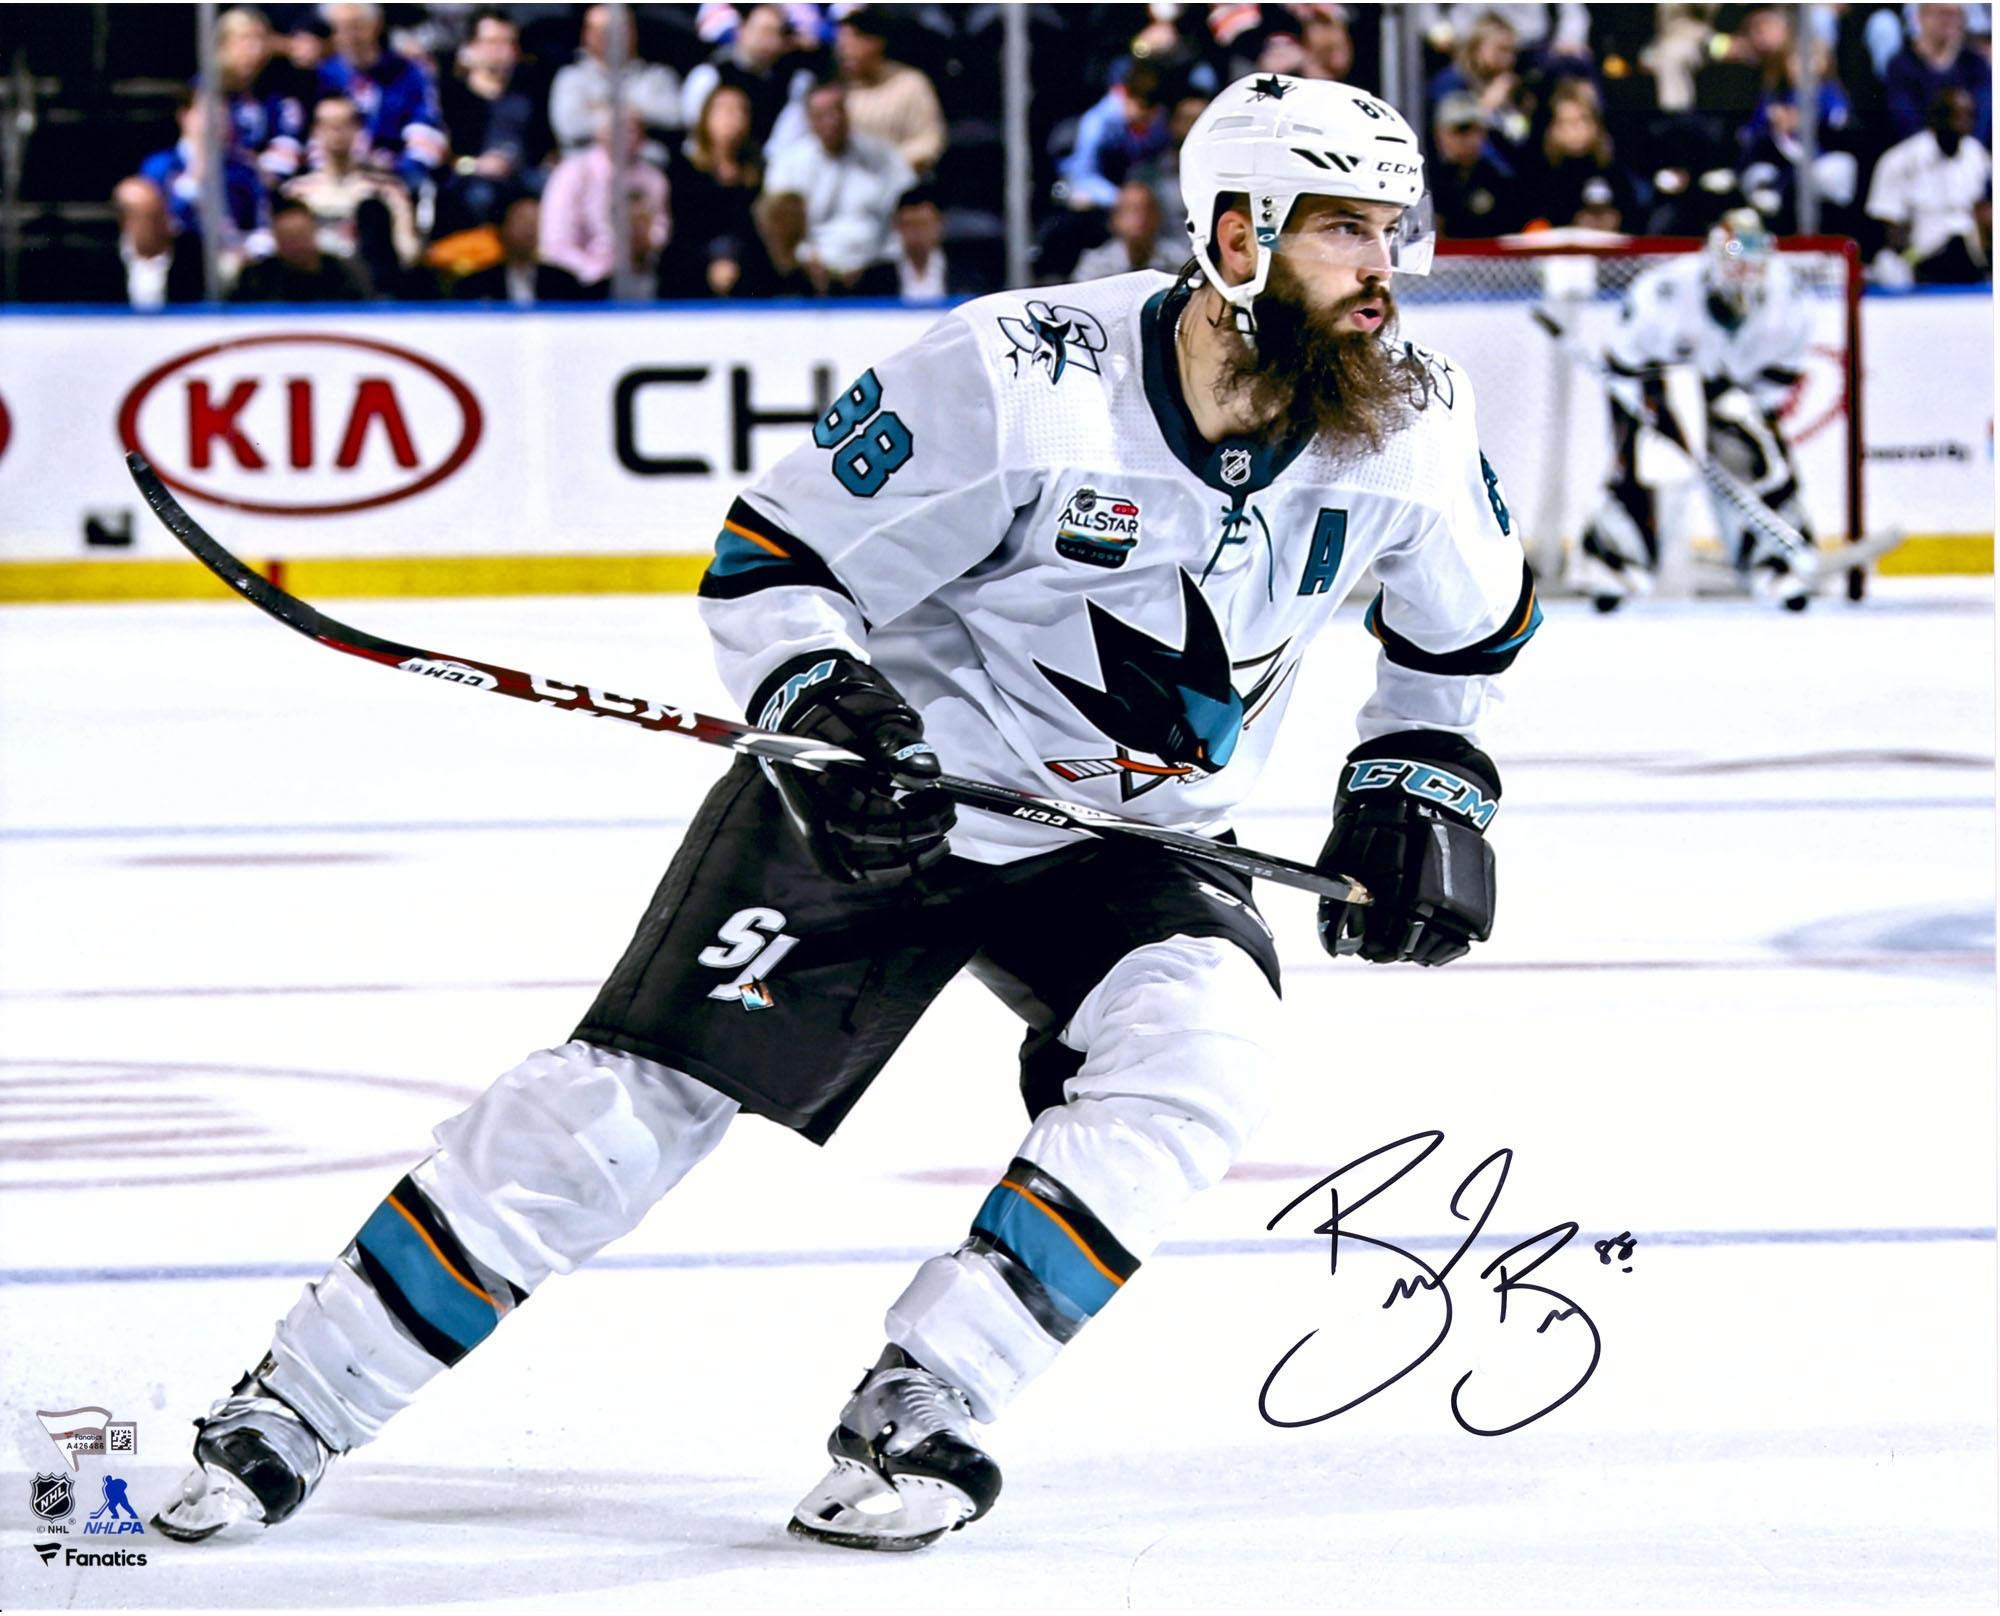 """Brent Burns San Jose Sharks Autographed 16"""" x 20"""" White Jersey Skating Photograph Fanatics Authentic Certified"""